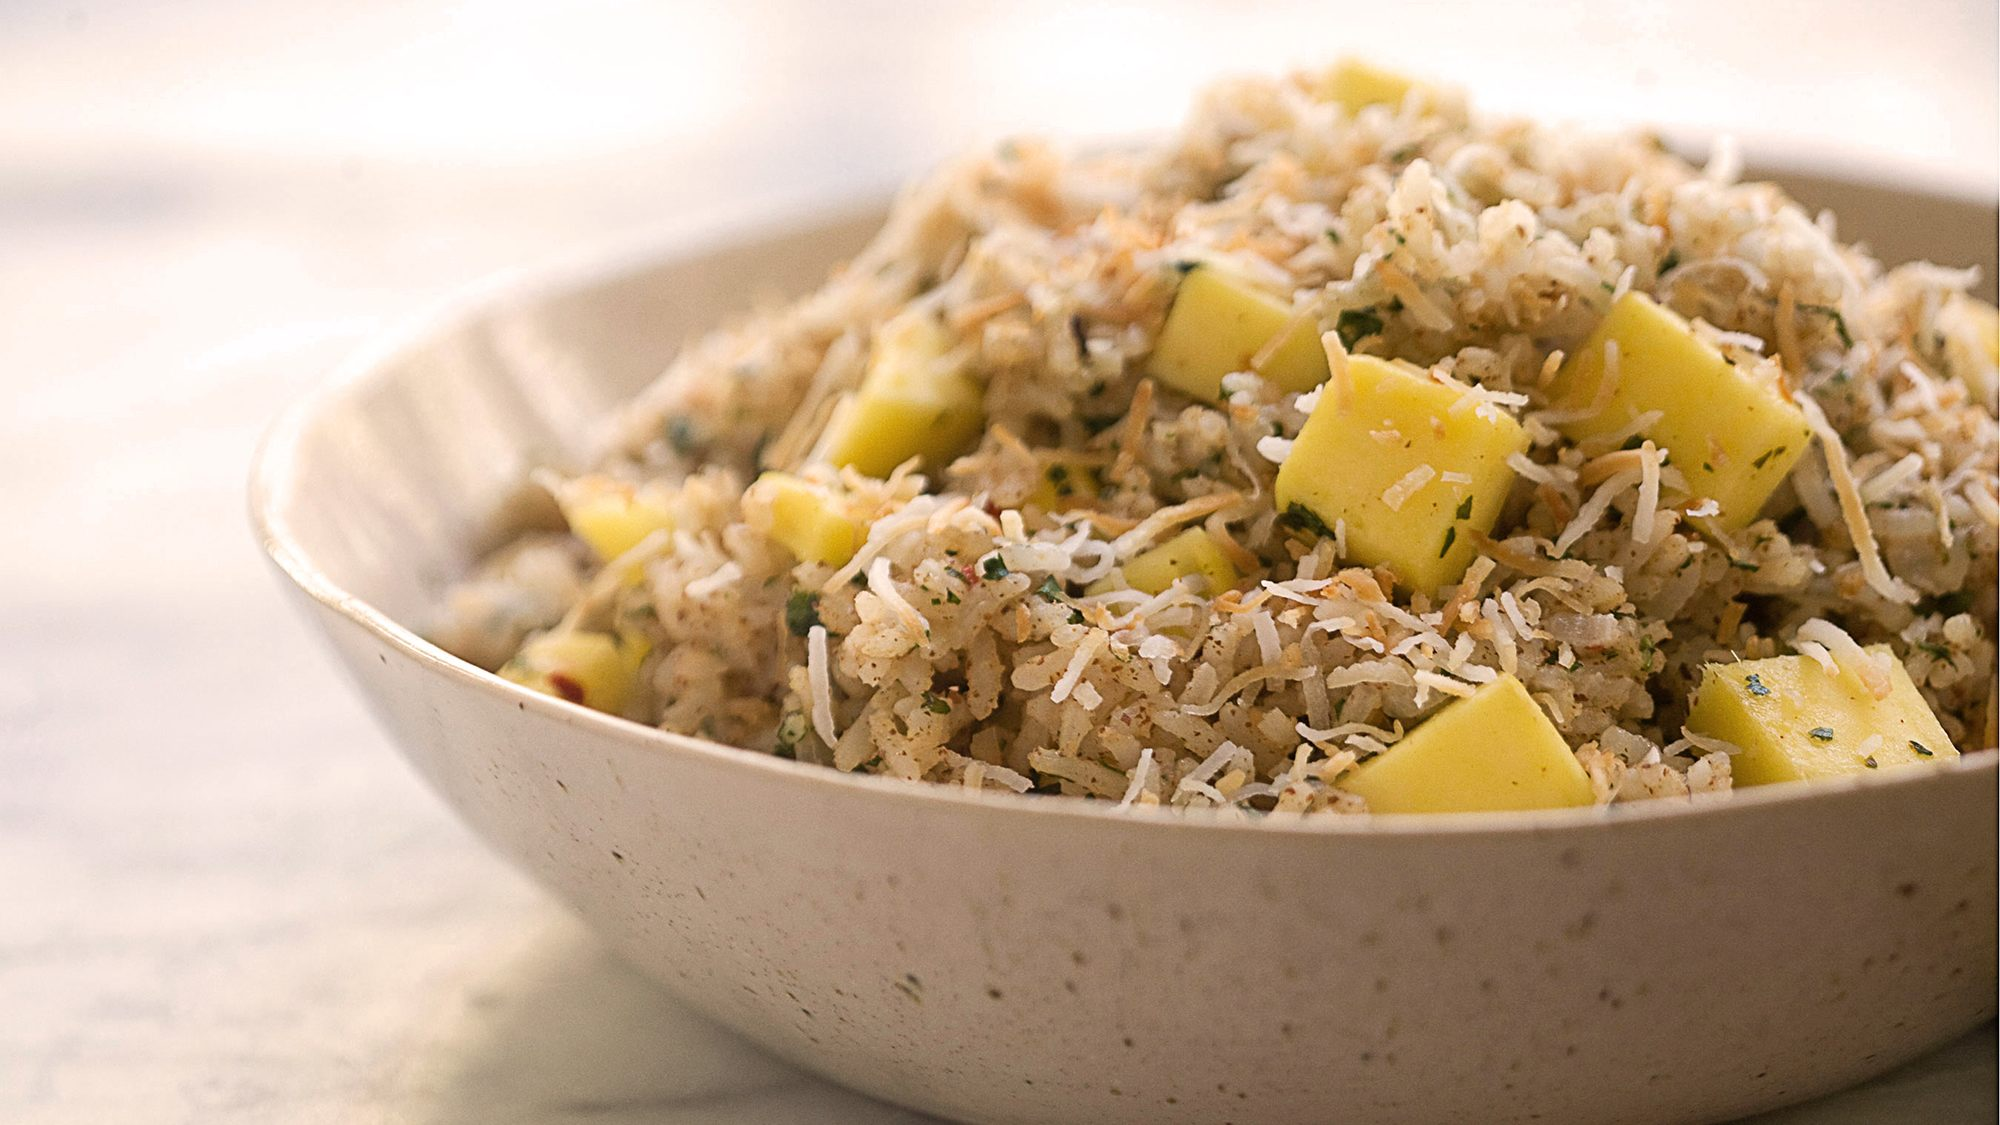 McCormick Gourmet Spiced Jasmine Rice with Macadamia Nut Butter and Cilantro